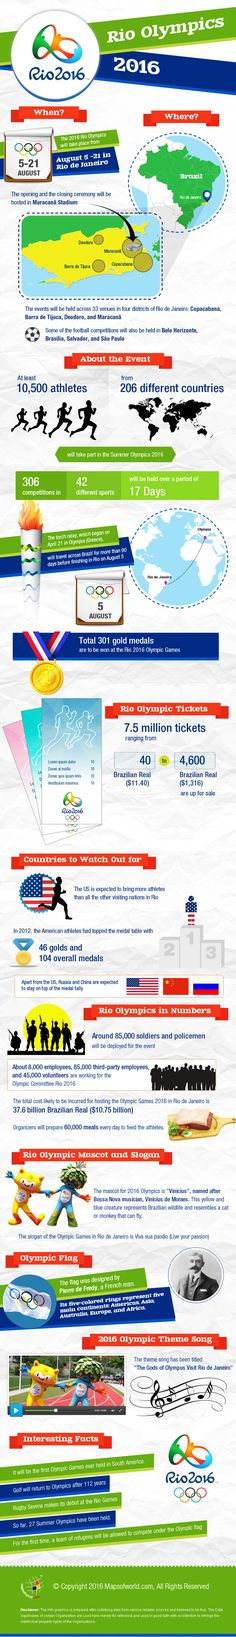 Rio 2016 Summer Olympics in Numbers - Sports Infographic